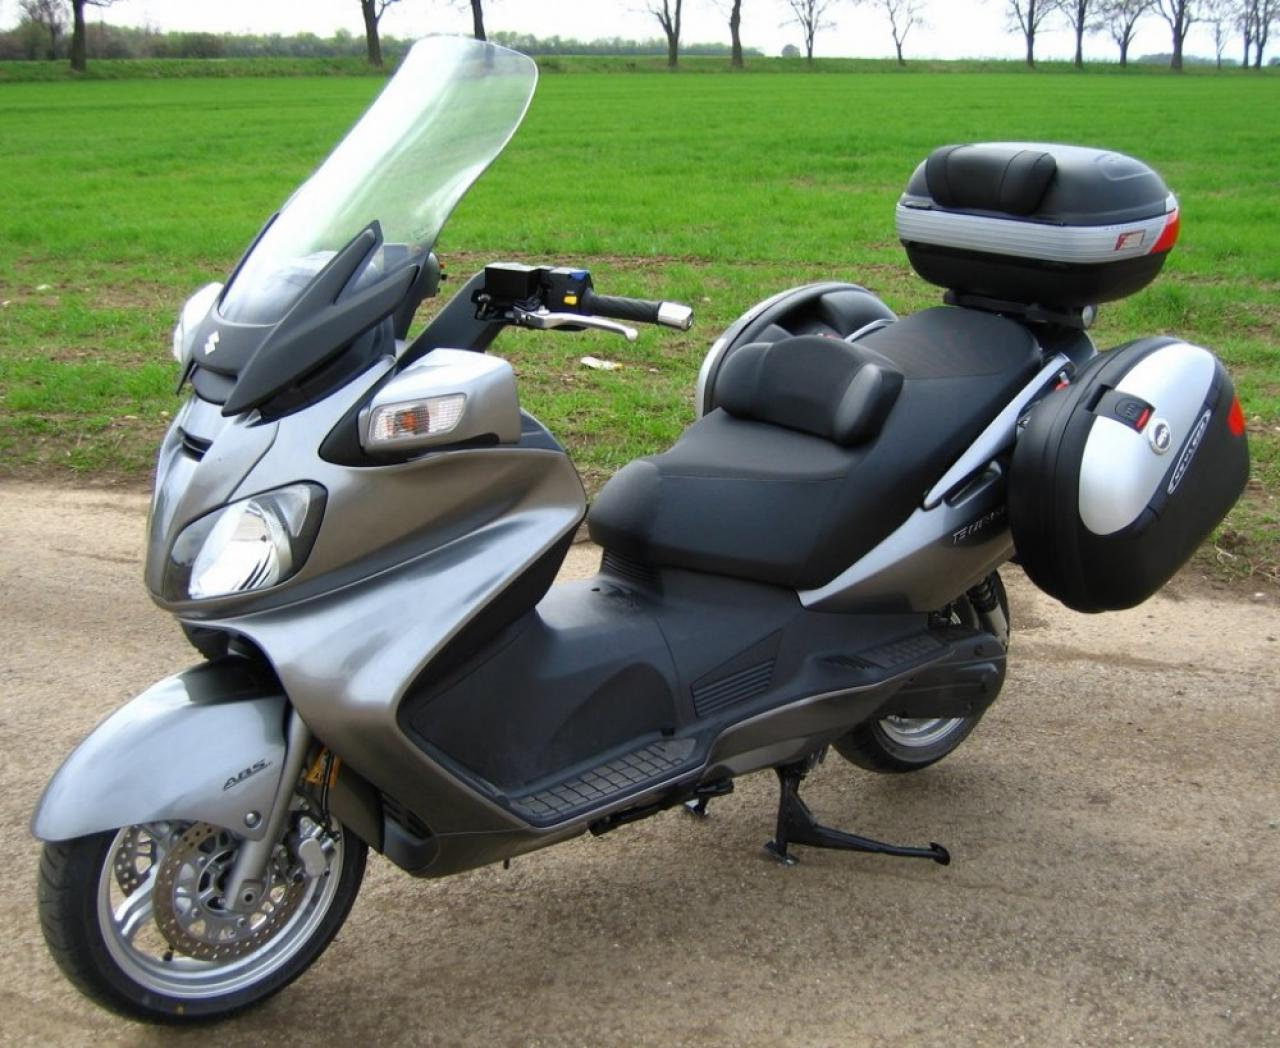 2010 suzuki burgman 650 exec moto zombdrive com. Black Bedroom Furniture Sets. Home Design Ideas